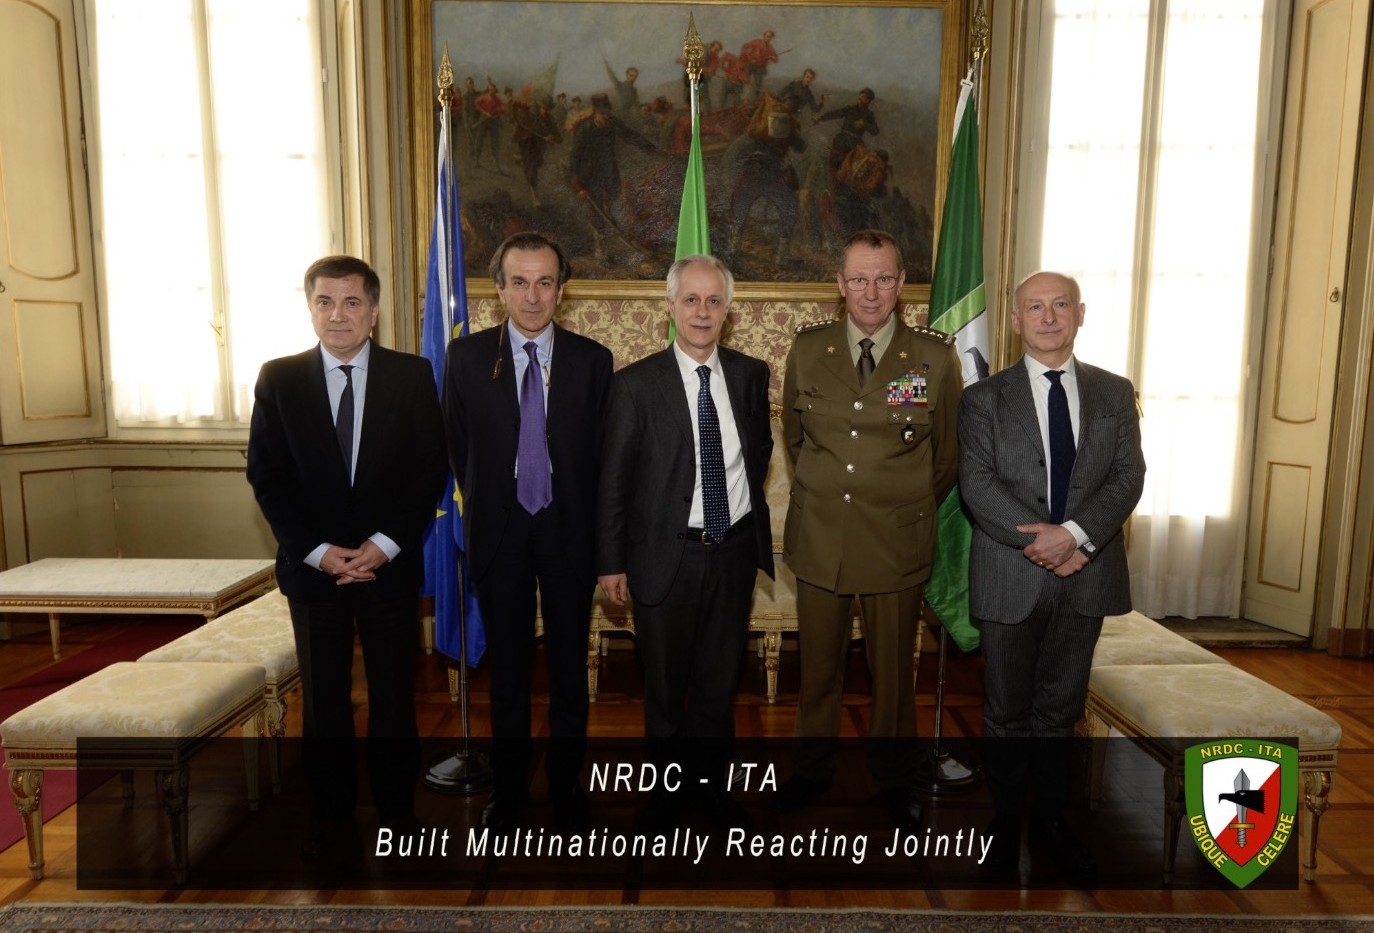 1st March - Lt. Gen. MARCHIO' met